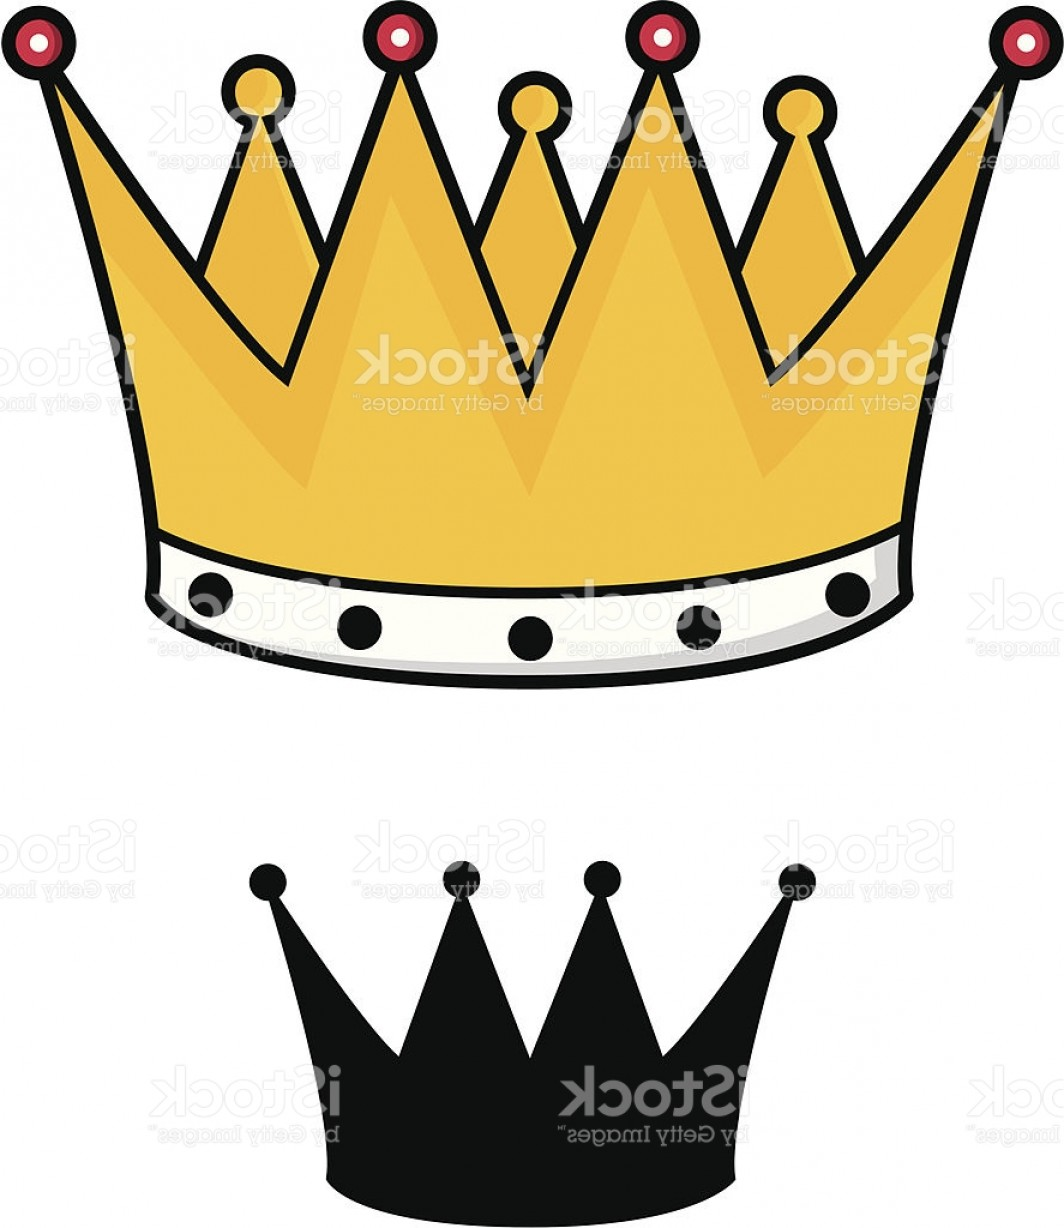 1064x1228 Gold Crown Silhouette Vector Shopatcloth